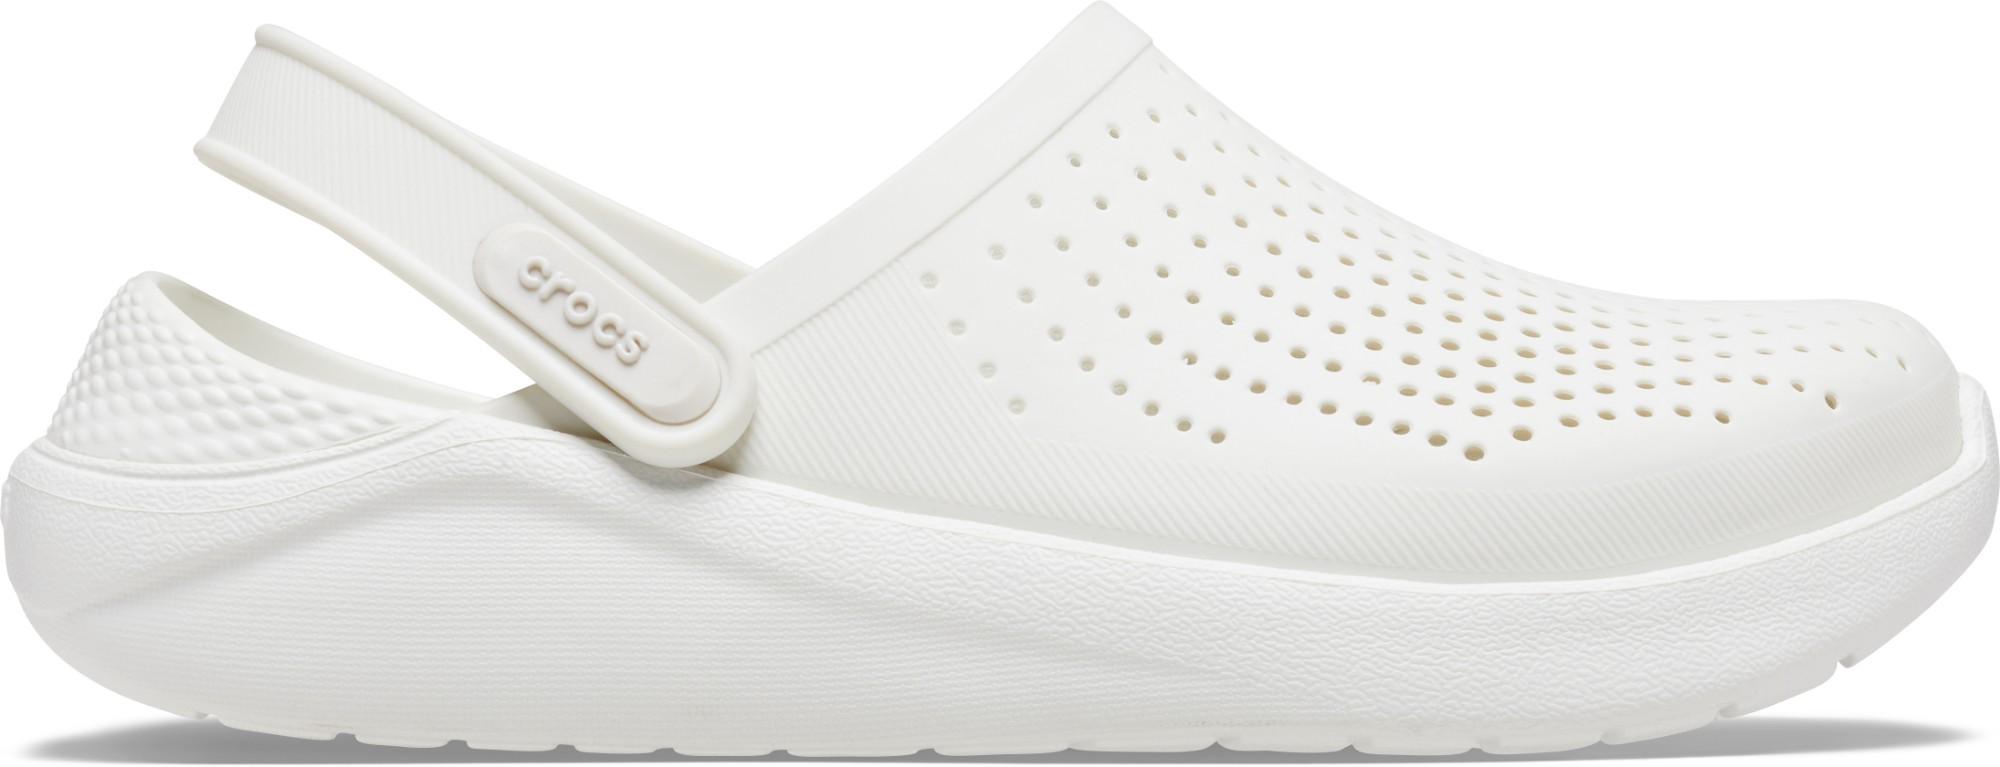 Crocs™ LiteRide Clog Almost White/Almost White 45,5